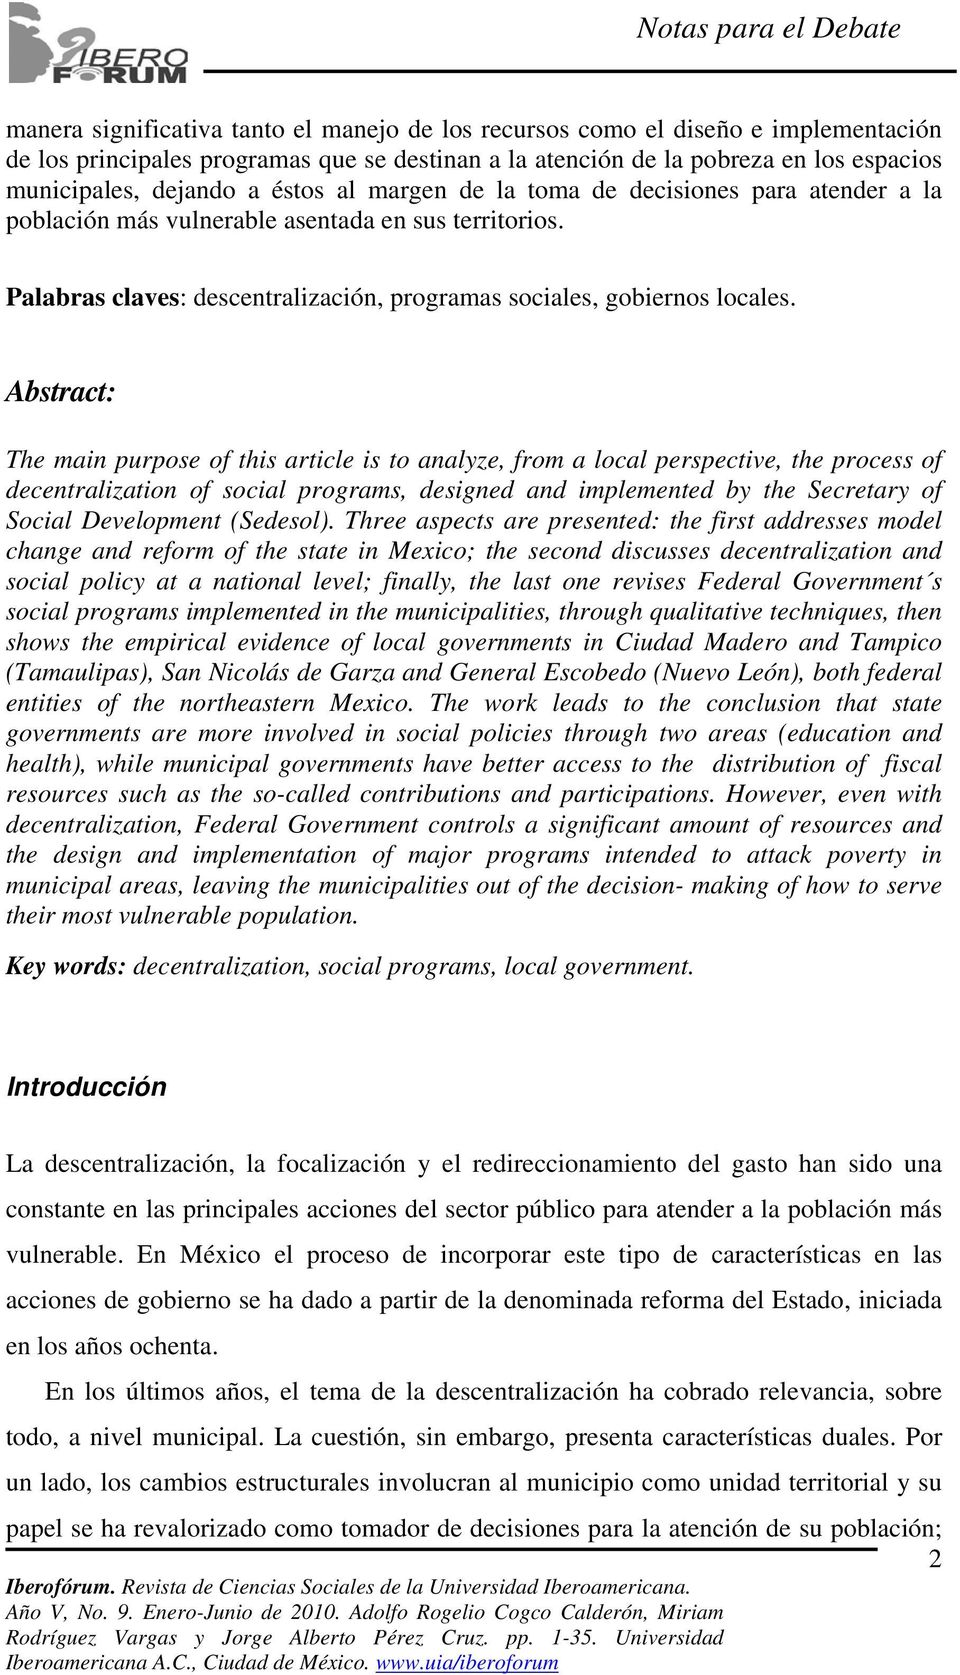 Abstract: The main purpose of this article is to analyze, from a local perspective, the process of decentralization of social programs, designed and implemented by the Secretary of Social Development